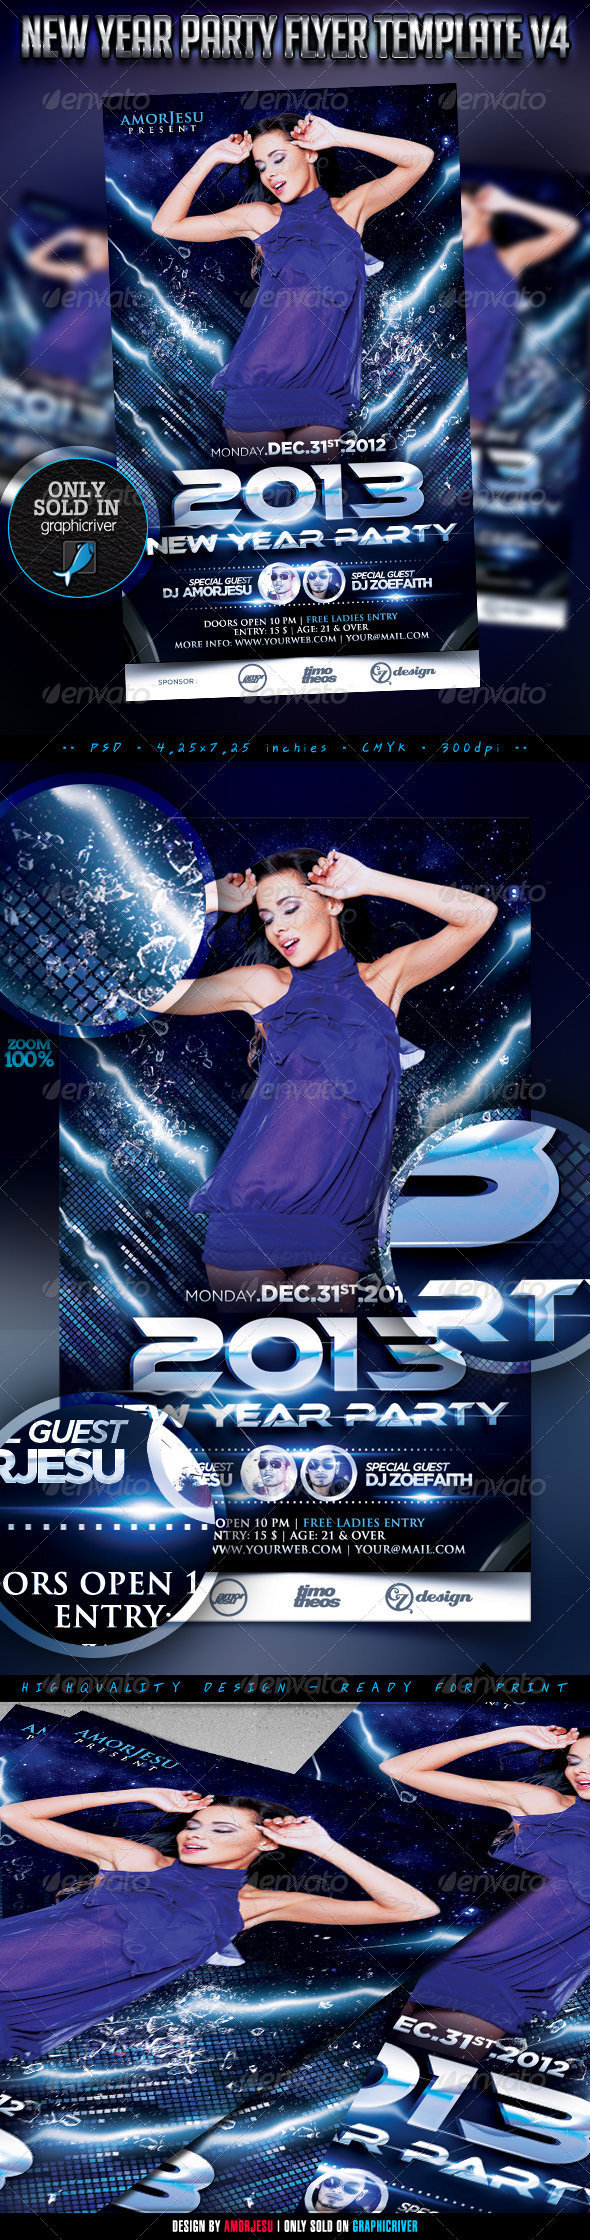 New Year Party Flyer Template V4 - Clubs &amp; Parties Events